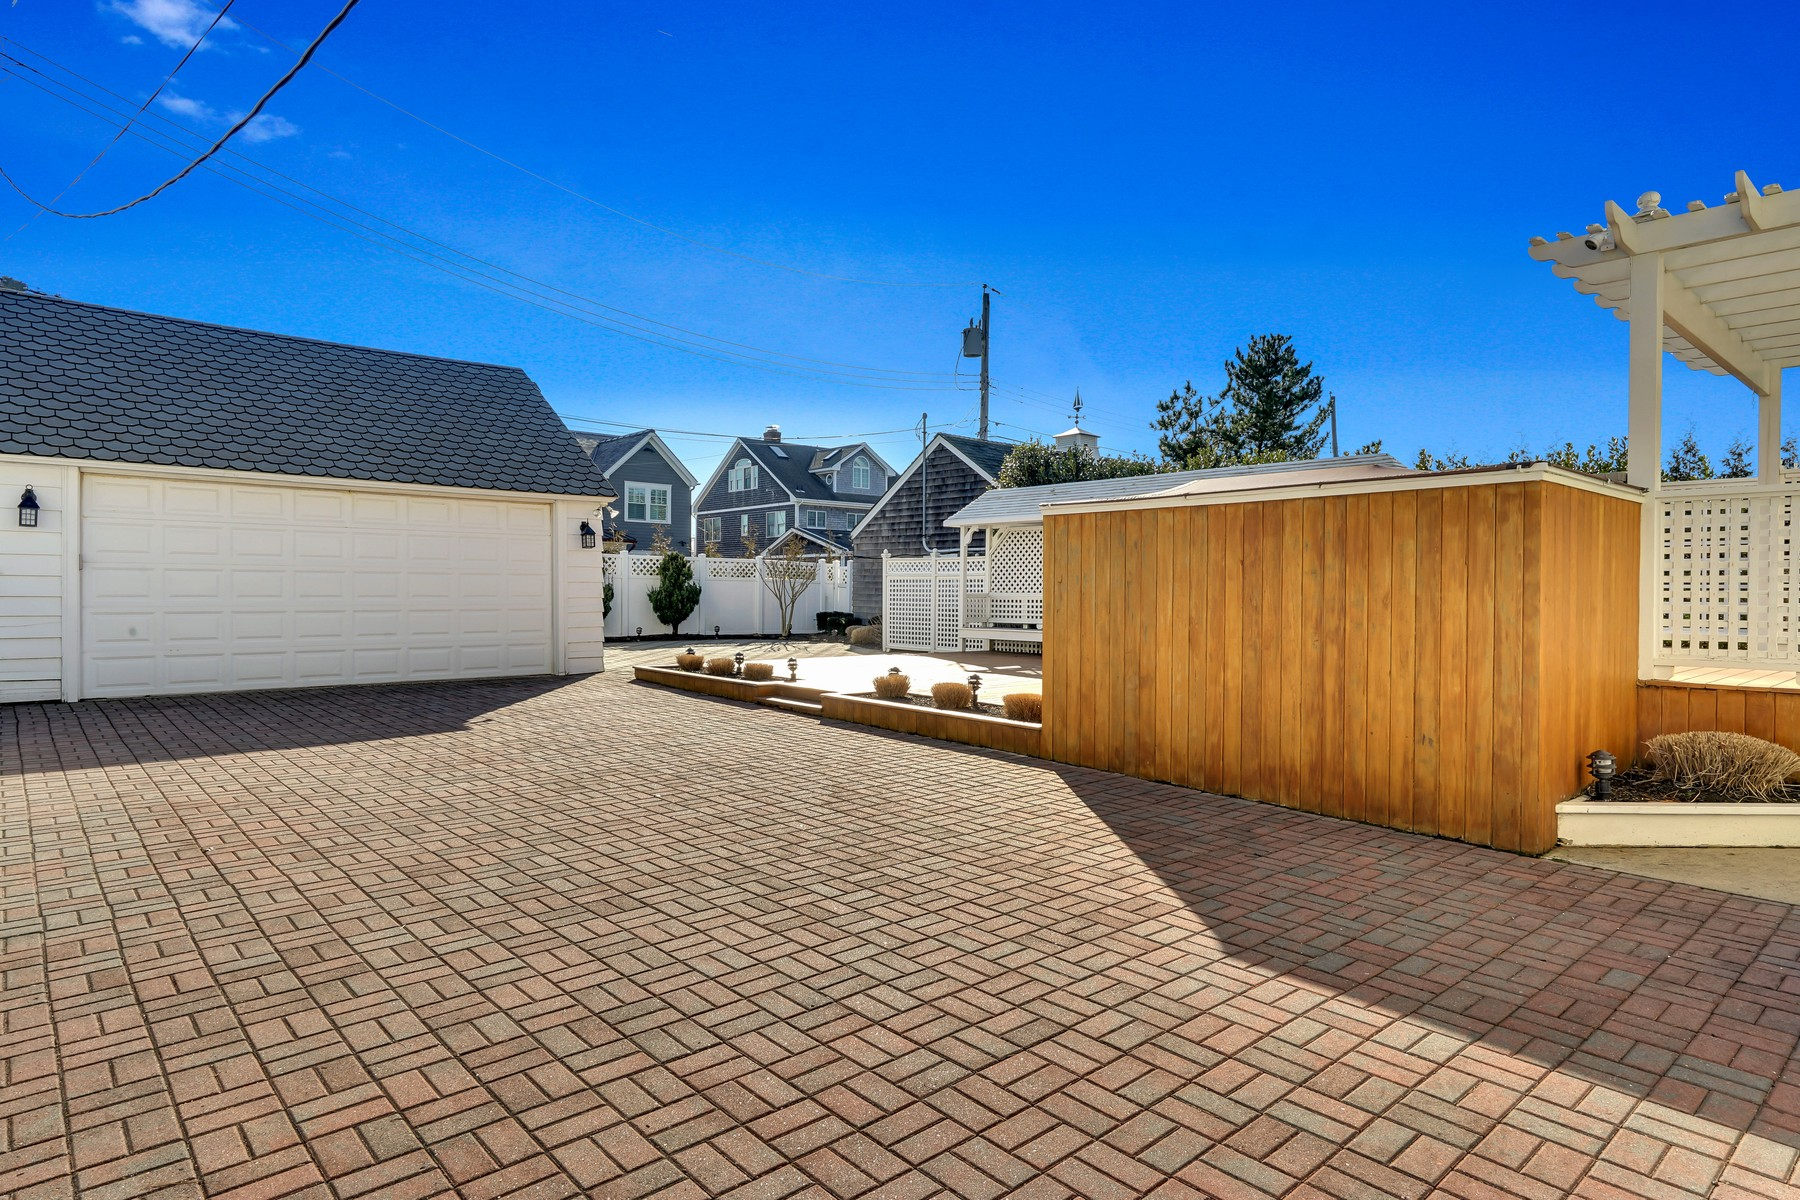 Additional photo for property listing at Large Summer Rental in Sea Girt 2 Brooklyn Boulevard Sea Girt, New Jersey 08750 United States